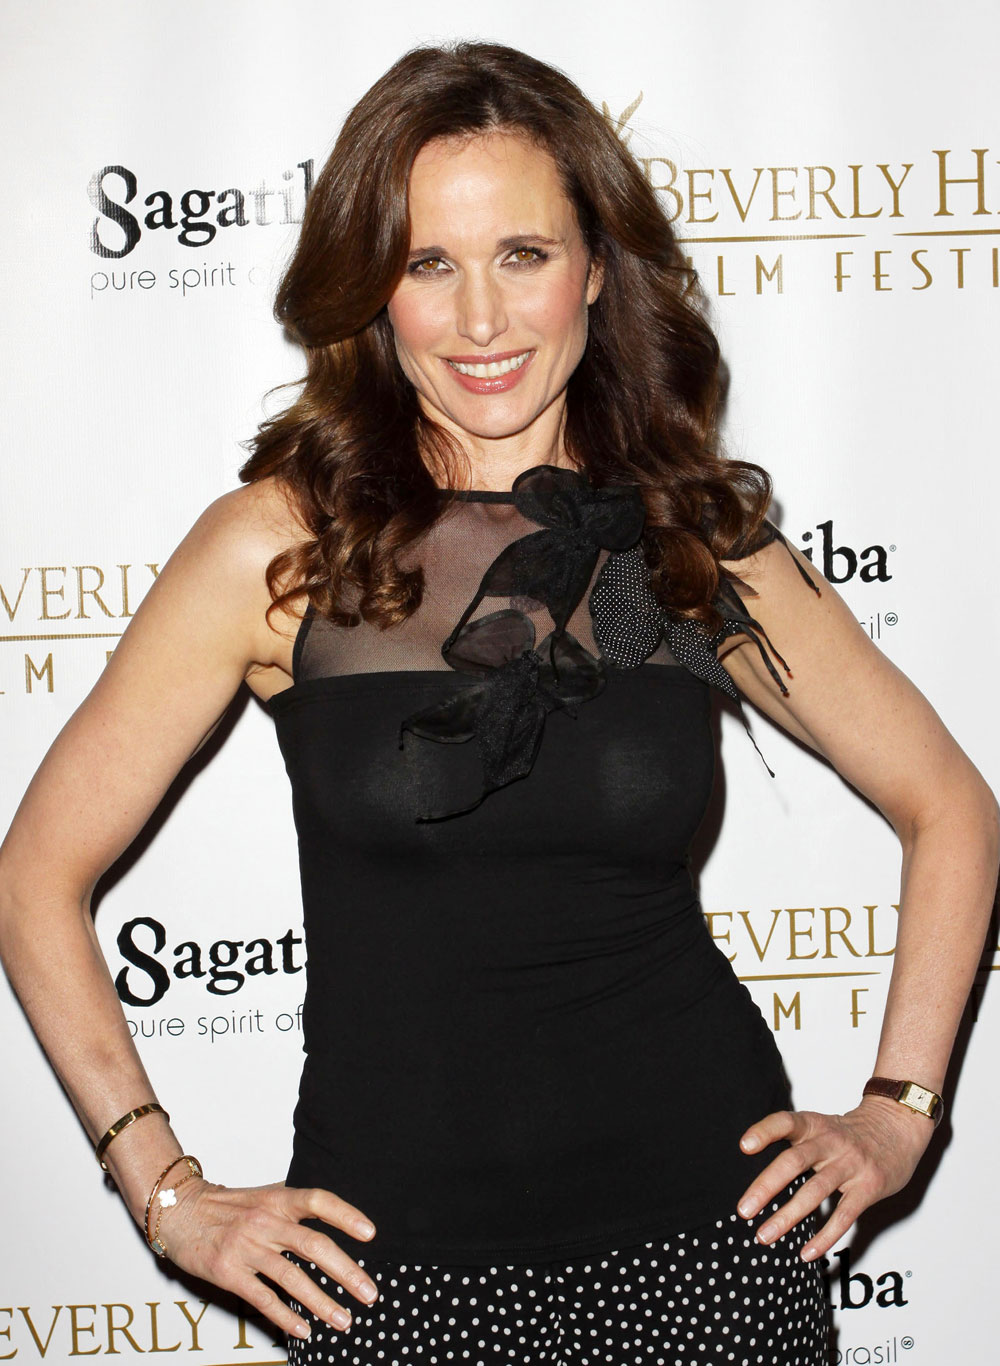 andie macdowell now